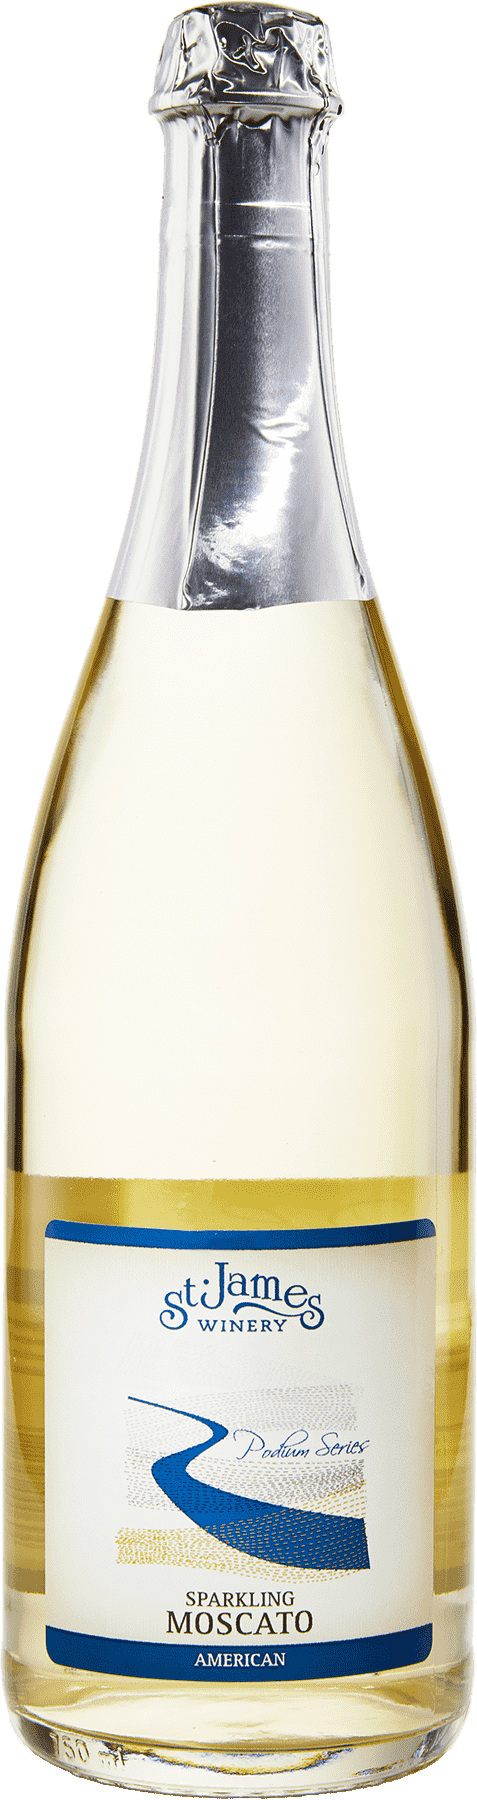 Sparkling Moscato - Podium Series - St. James Winery